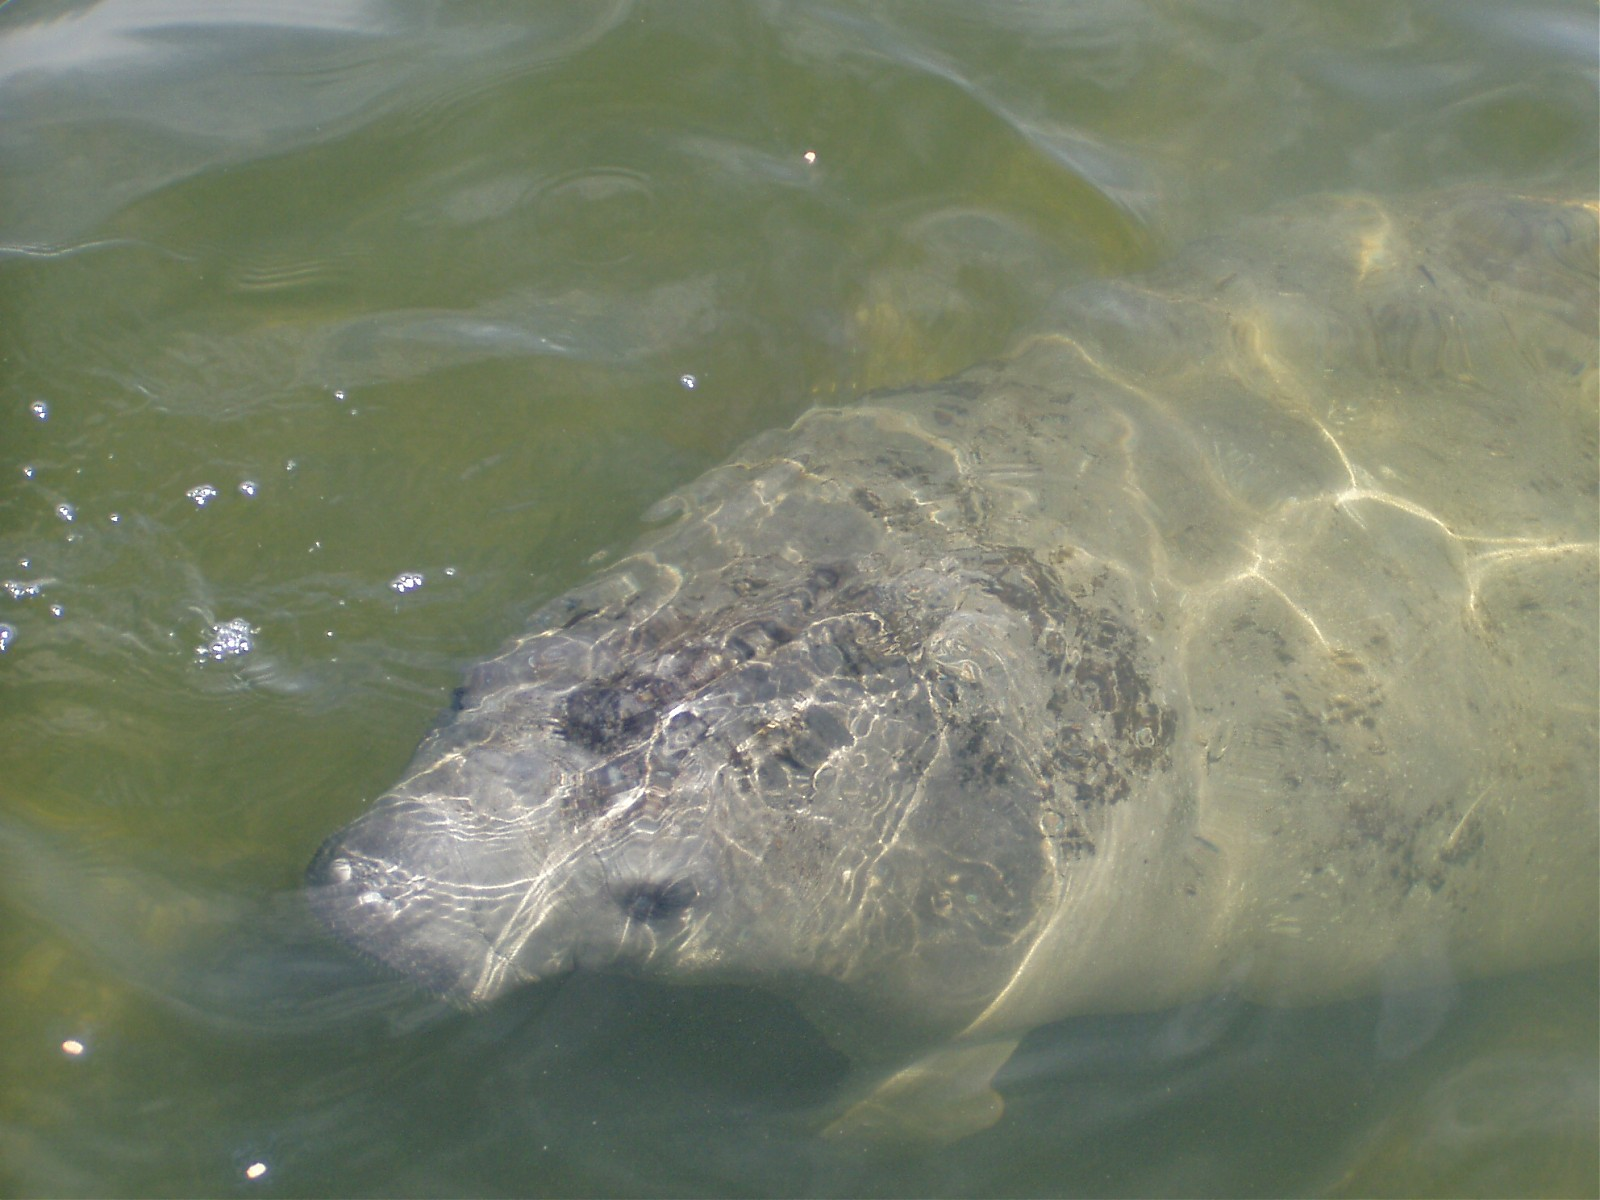 Click image for larger version  Name:WW Manatee003.jpg Views:214 Size:286.0 KB ID:4629